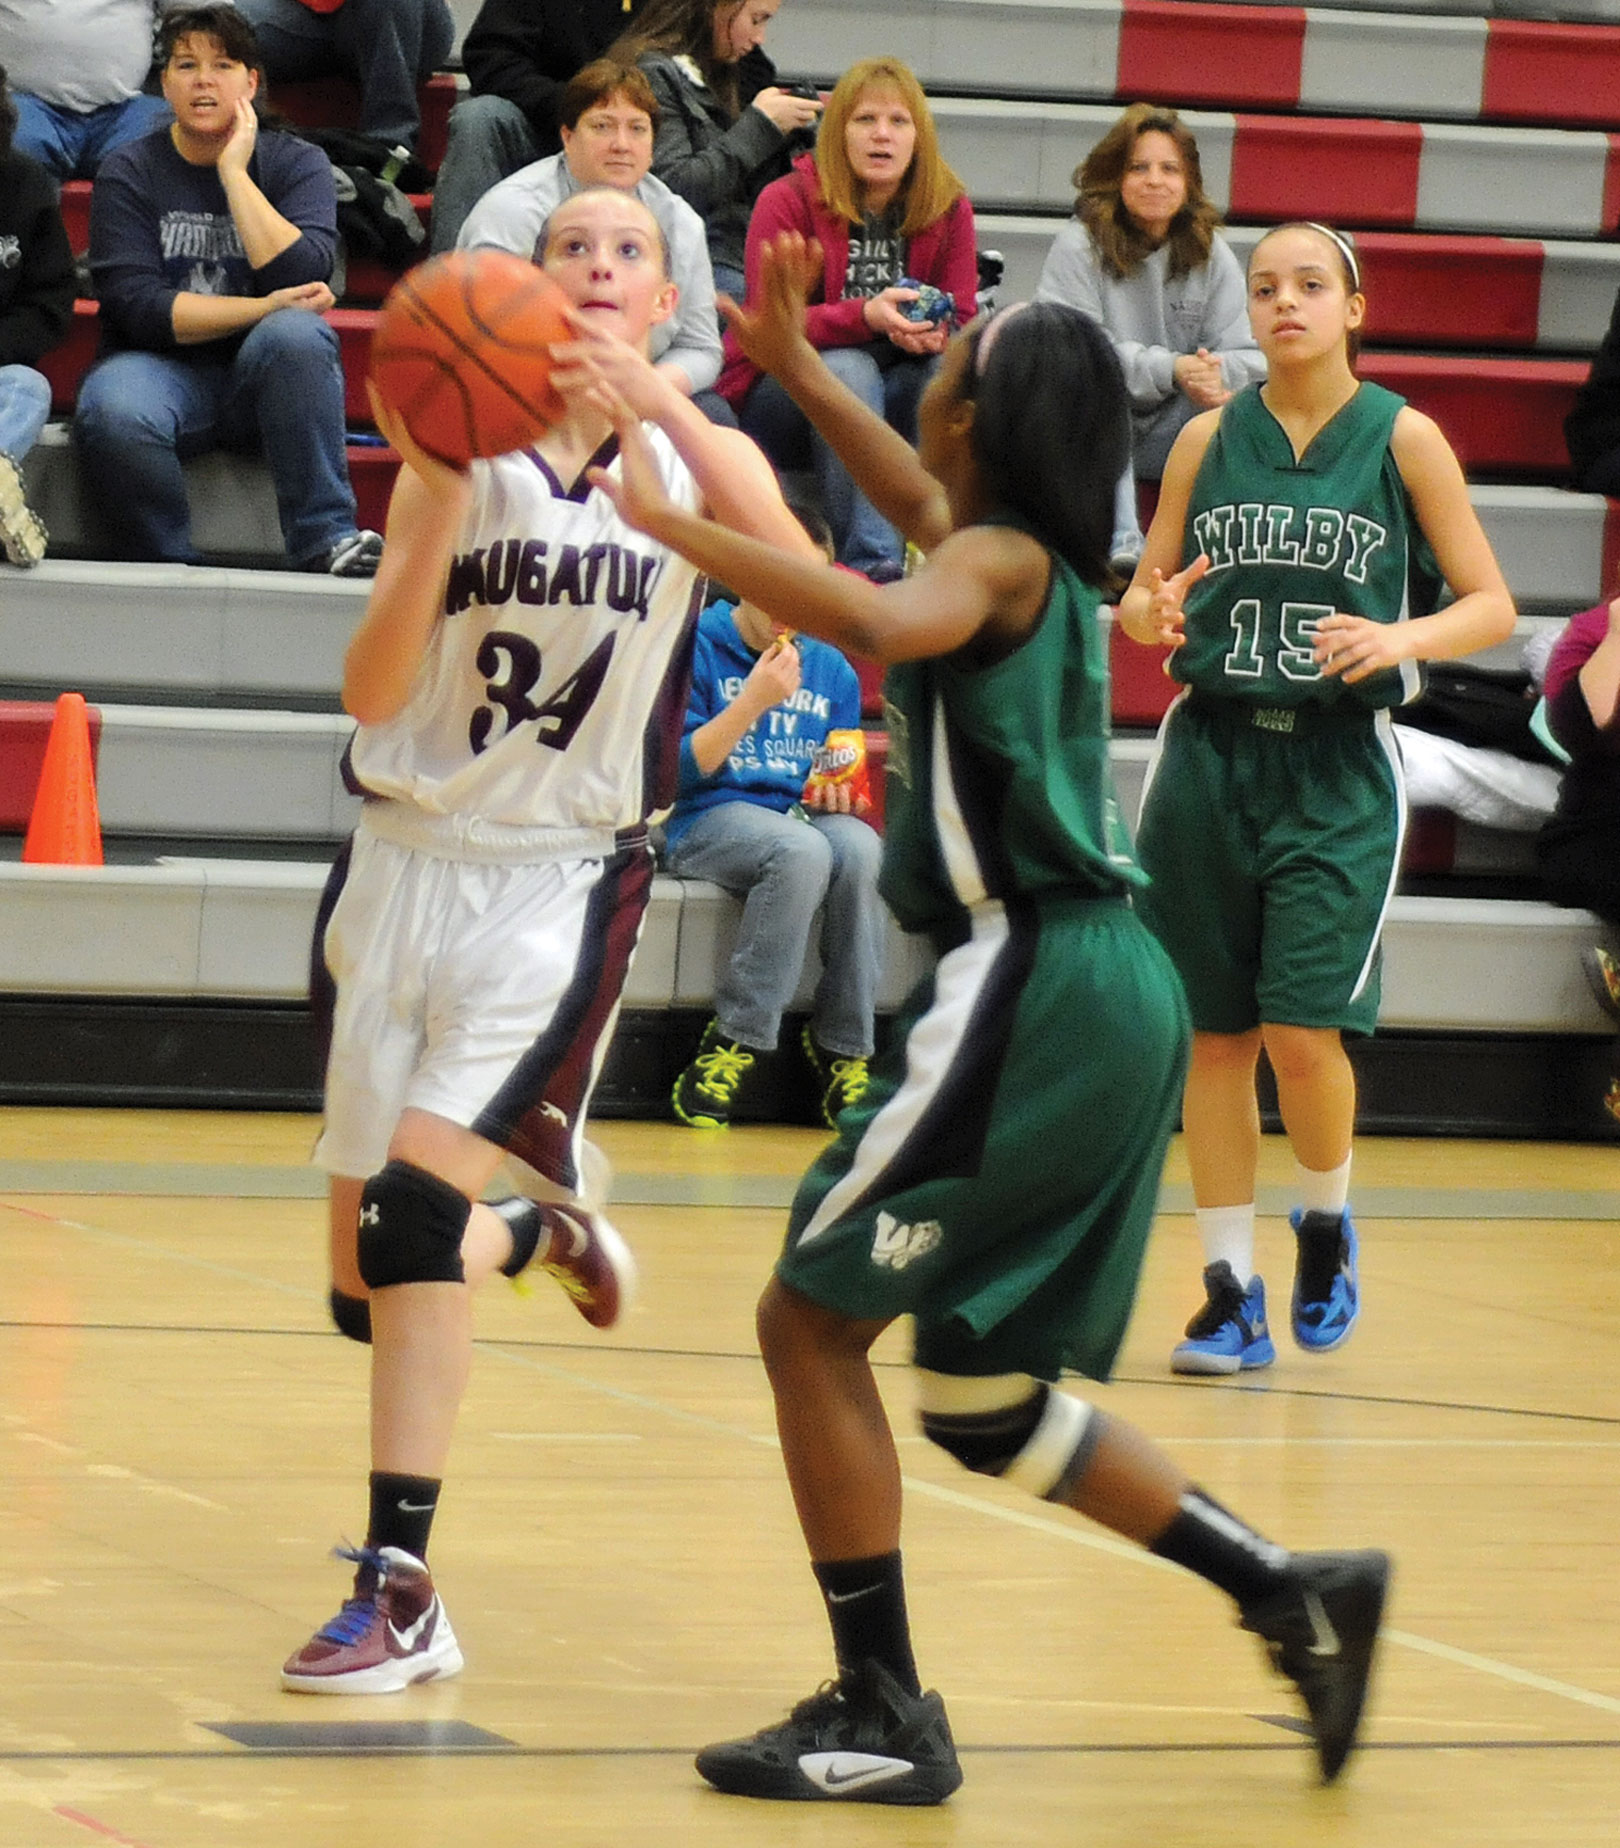 Naugy puts an end to losing streak